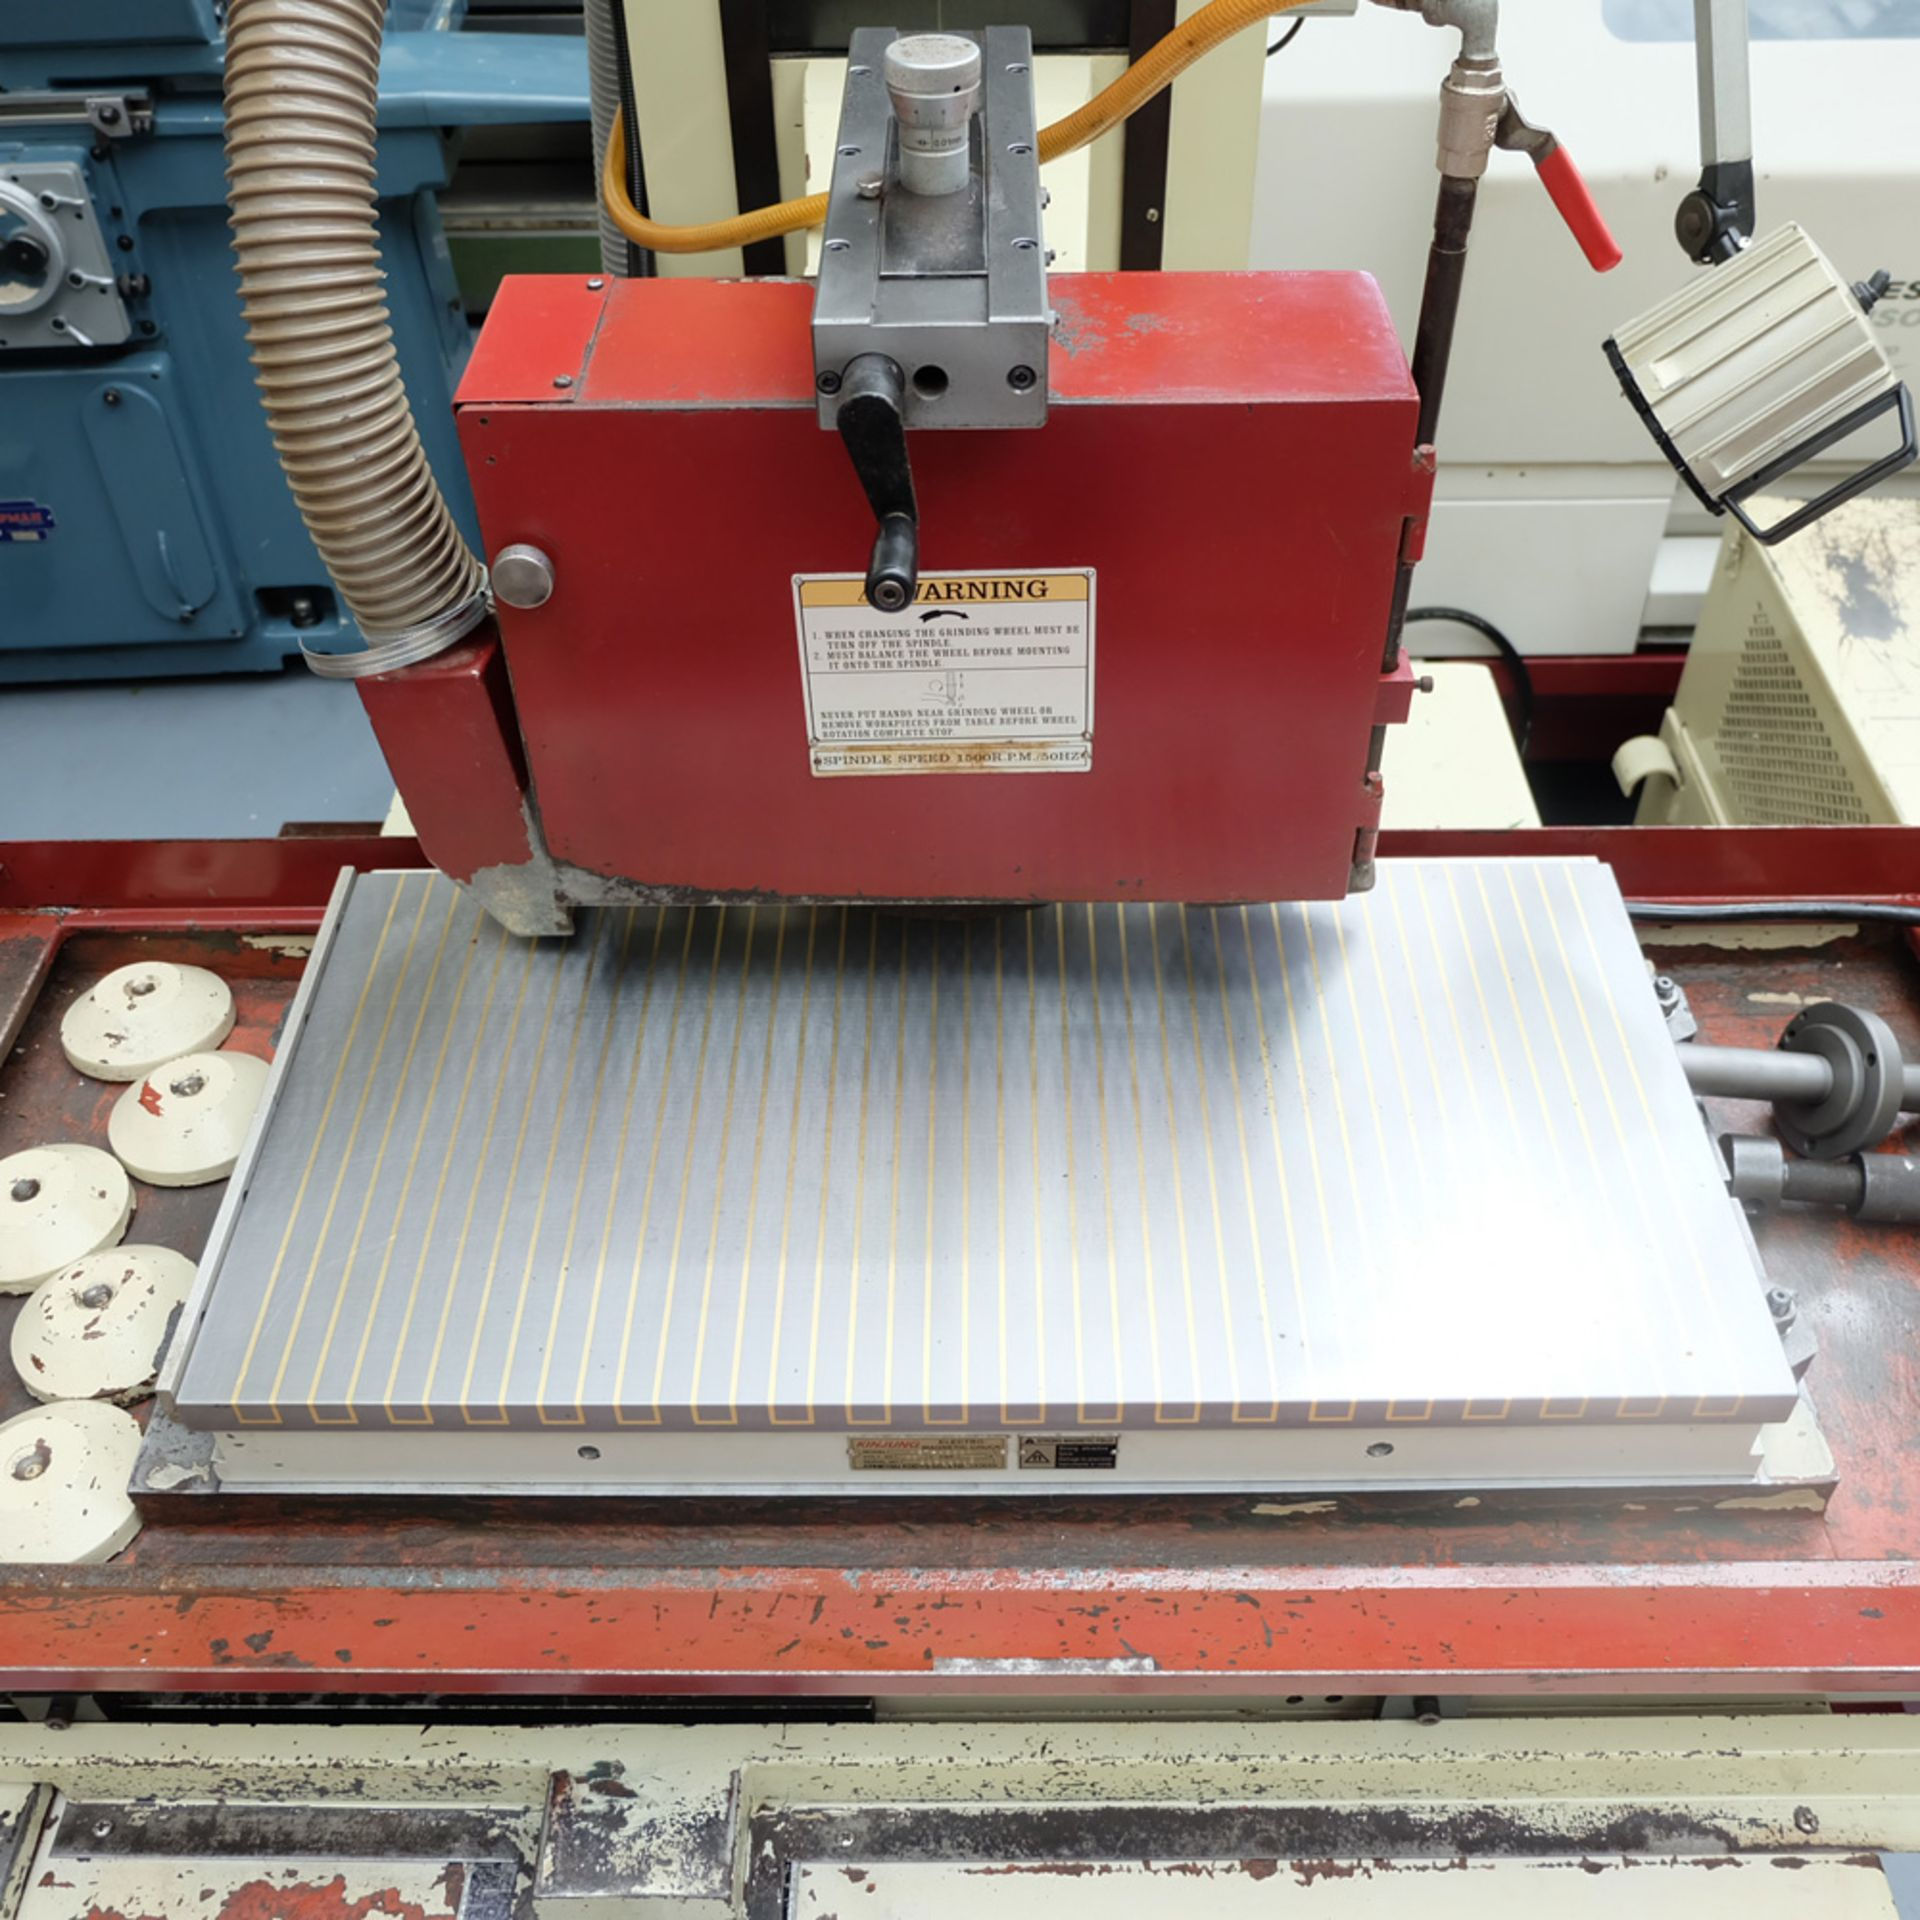 """XYZ Type 1632 Tool Room Surface Grinding Machine. Capacity 32"""" x 16"""". 32"""" x 16"""" Magnetic Chuck. - Image 3 of 17"""